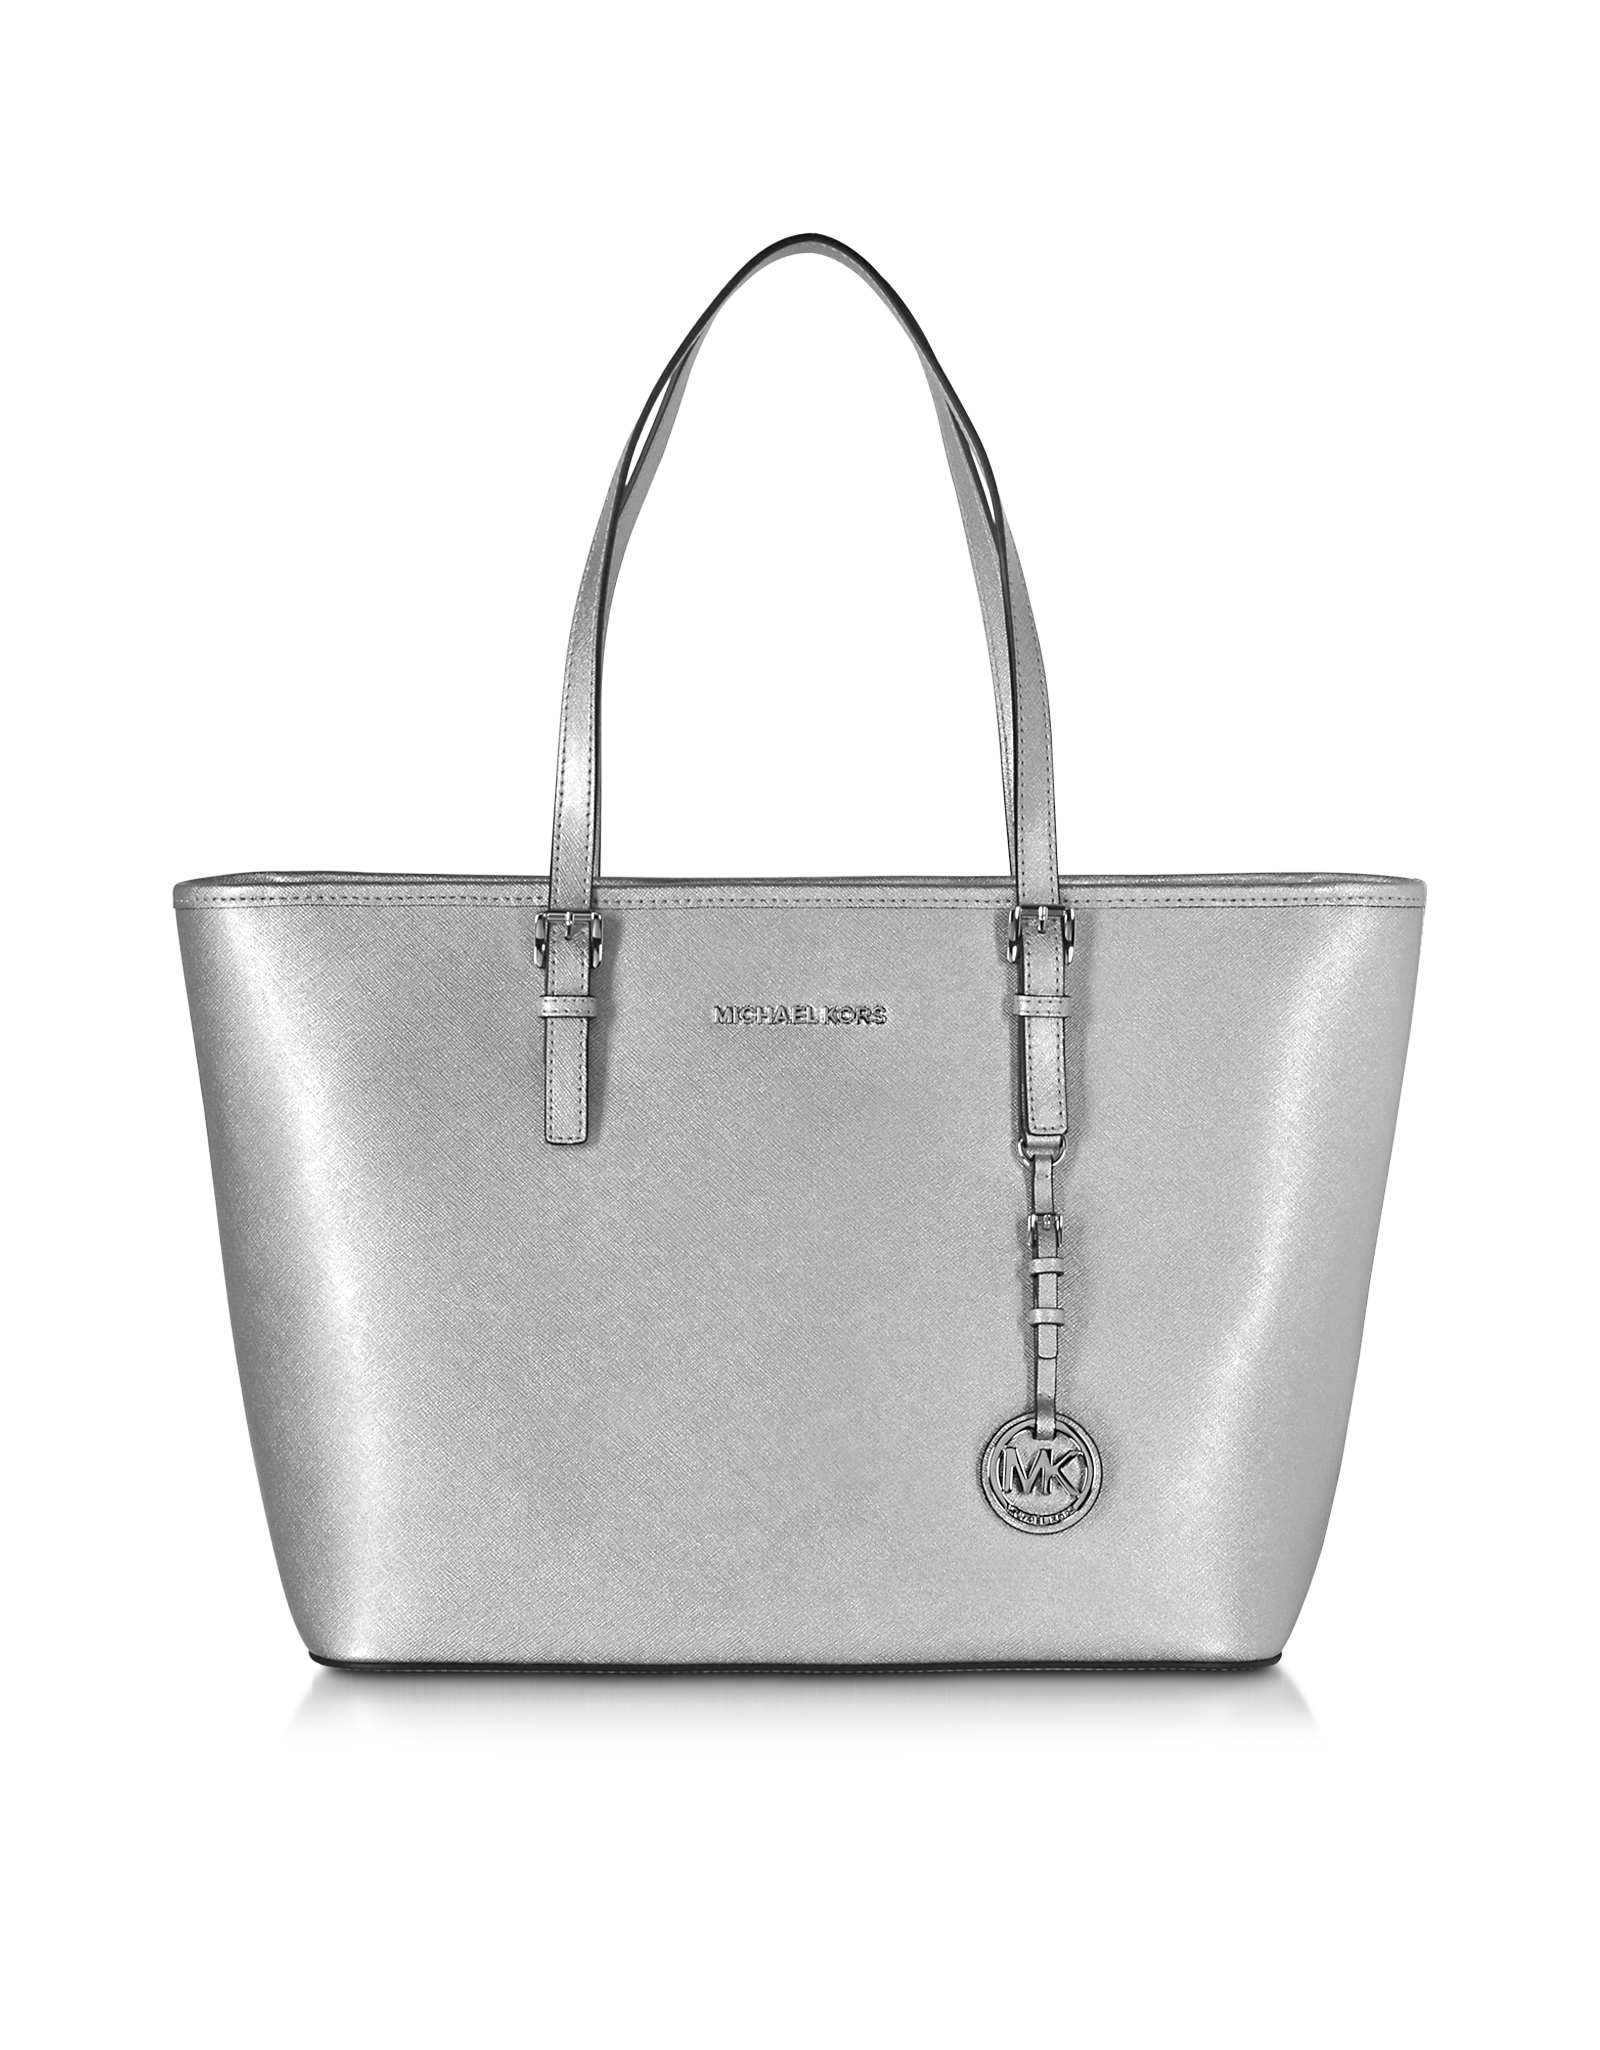 0013539f0ab75c Michael Kors Jet Set Travel Saffiano-Leather Tote in Metallic - Lyst